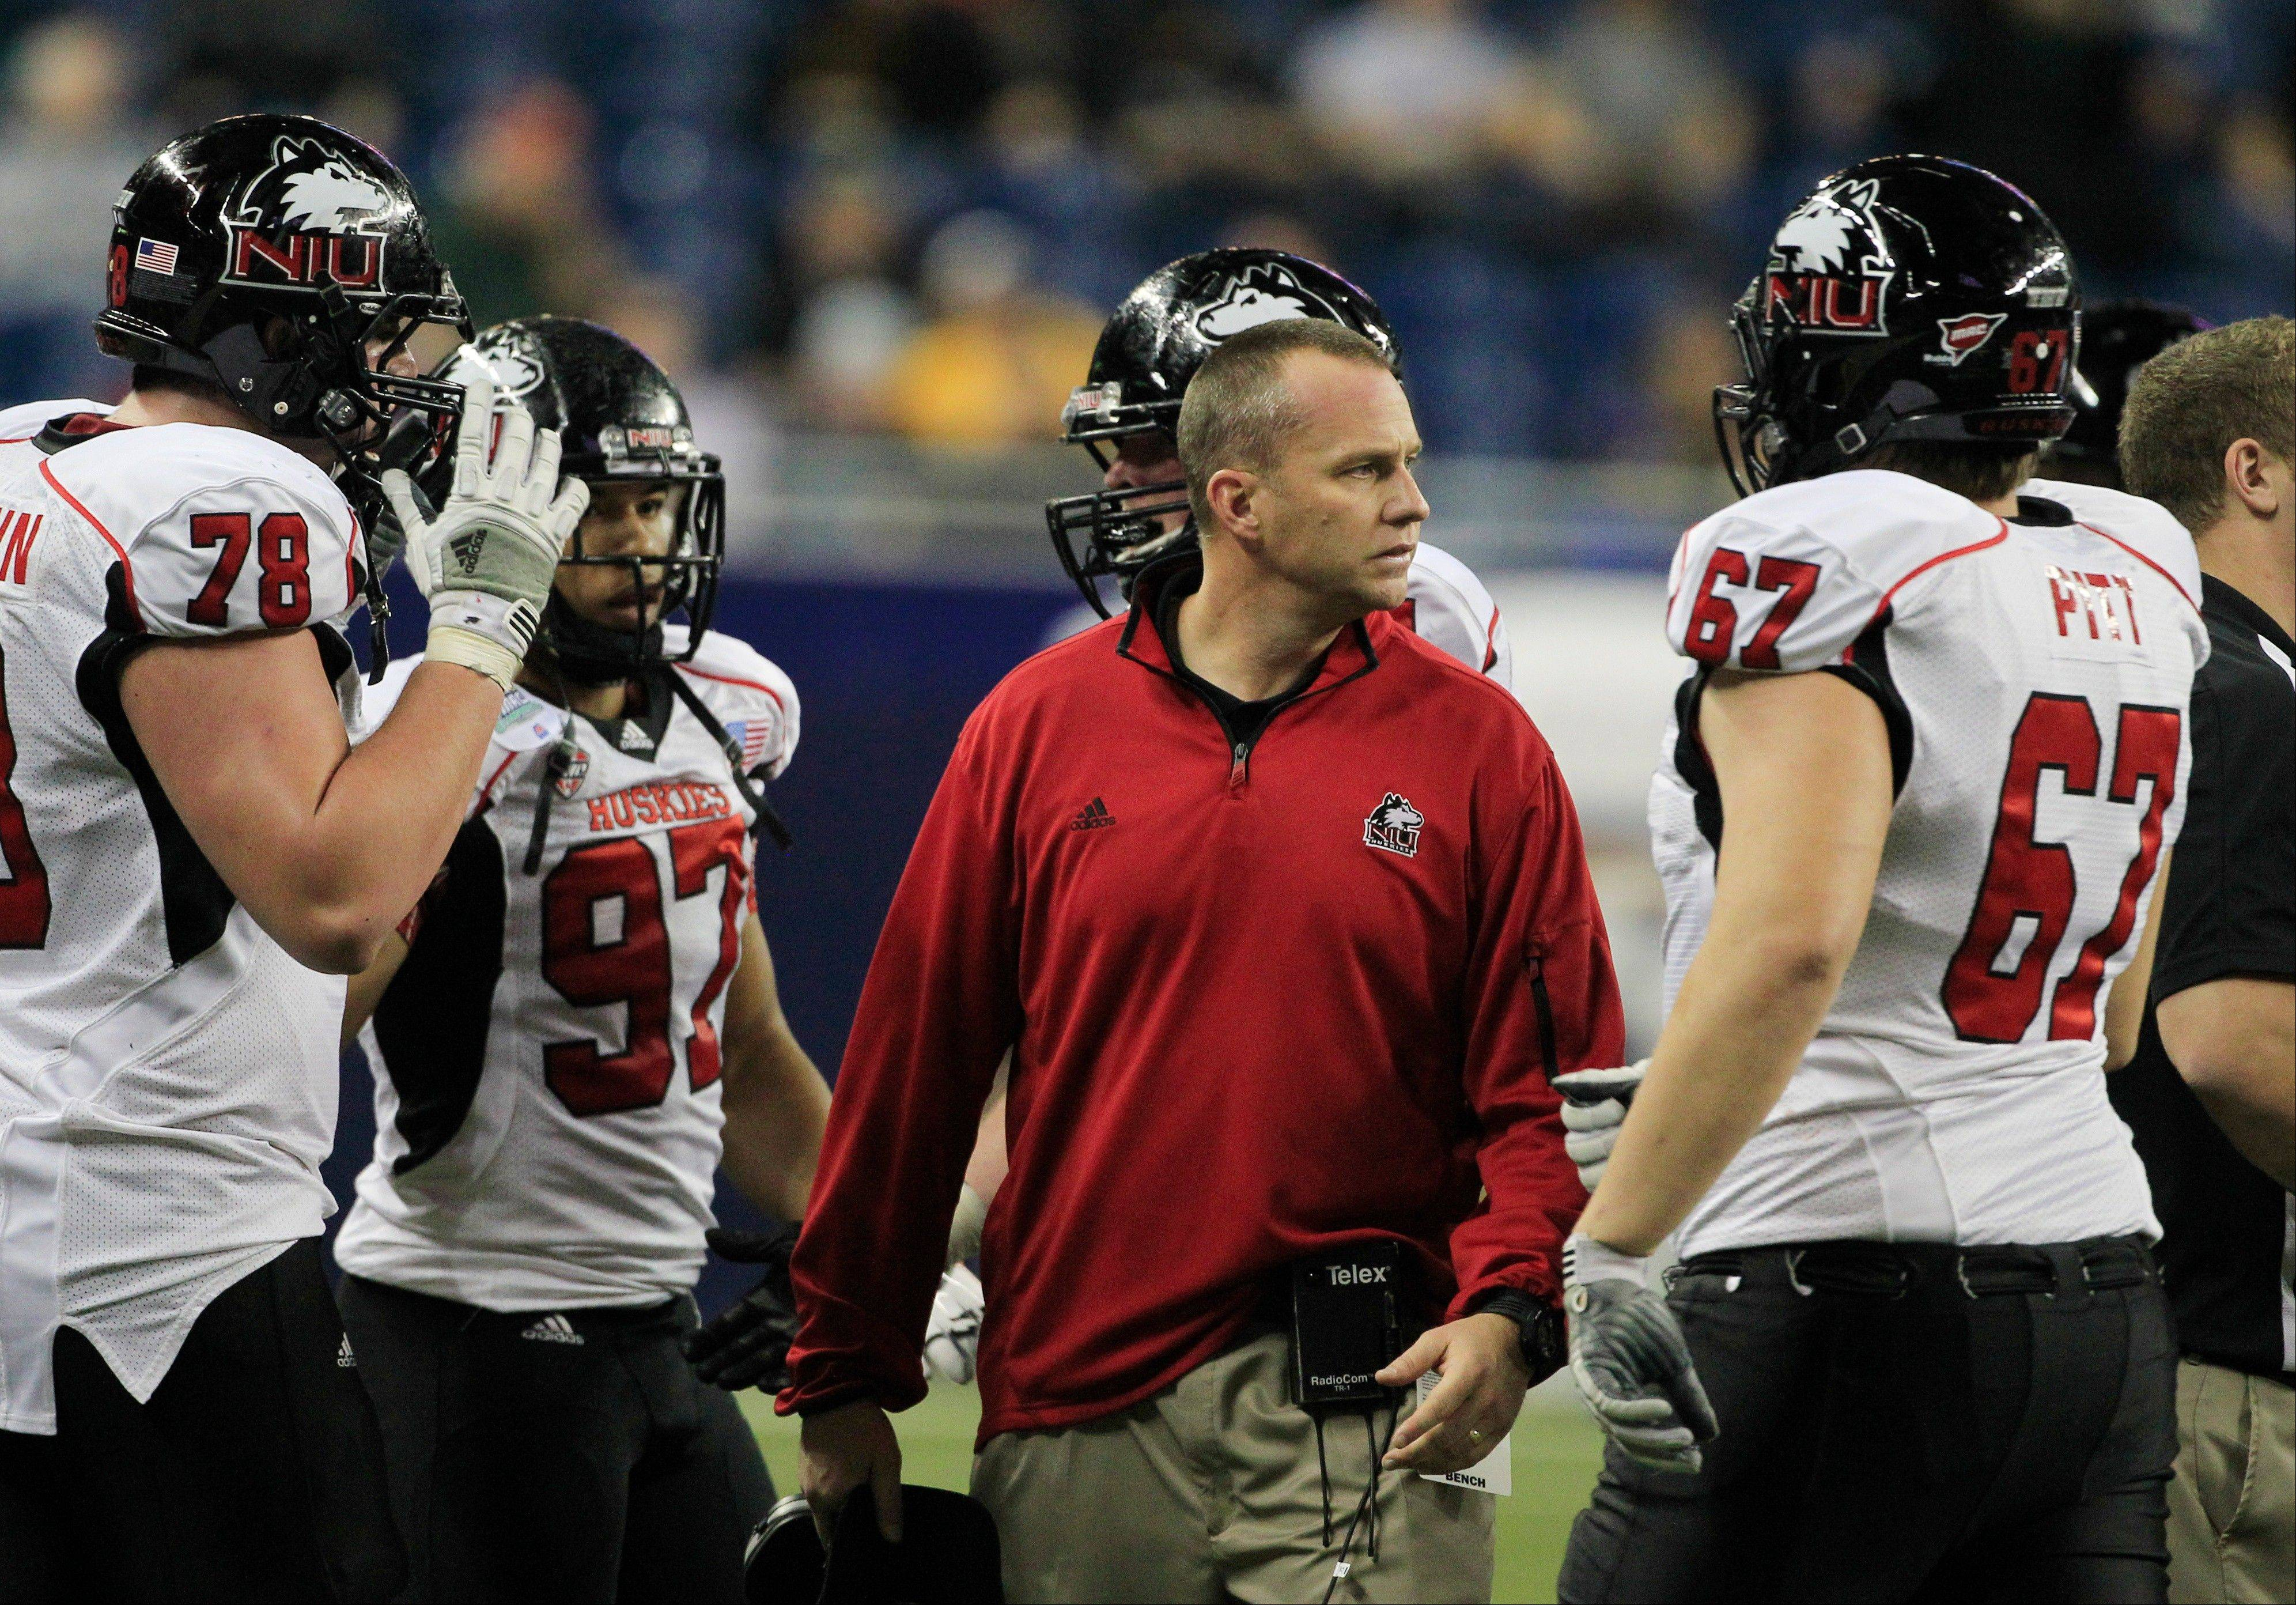 Northern Illinois head coach Dave Doeren, center, prepares to talk to his team Friday during the third quarter.